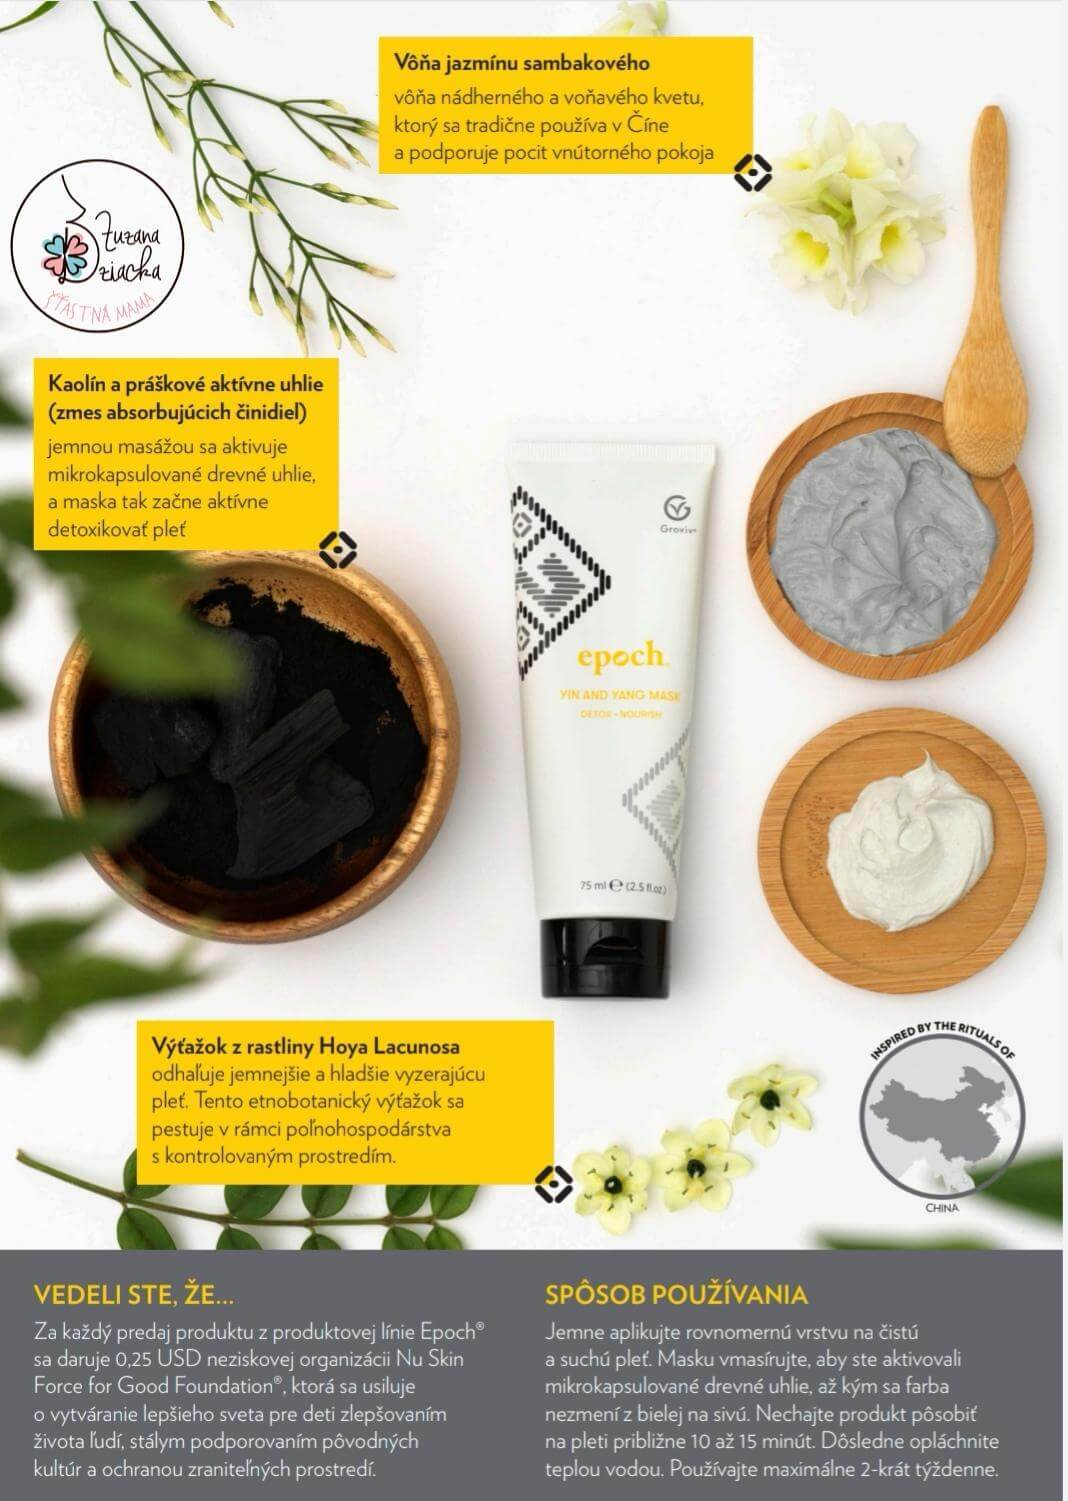 EPOCH Yin Yang face mask 2